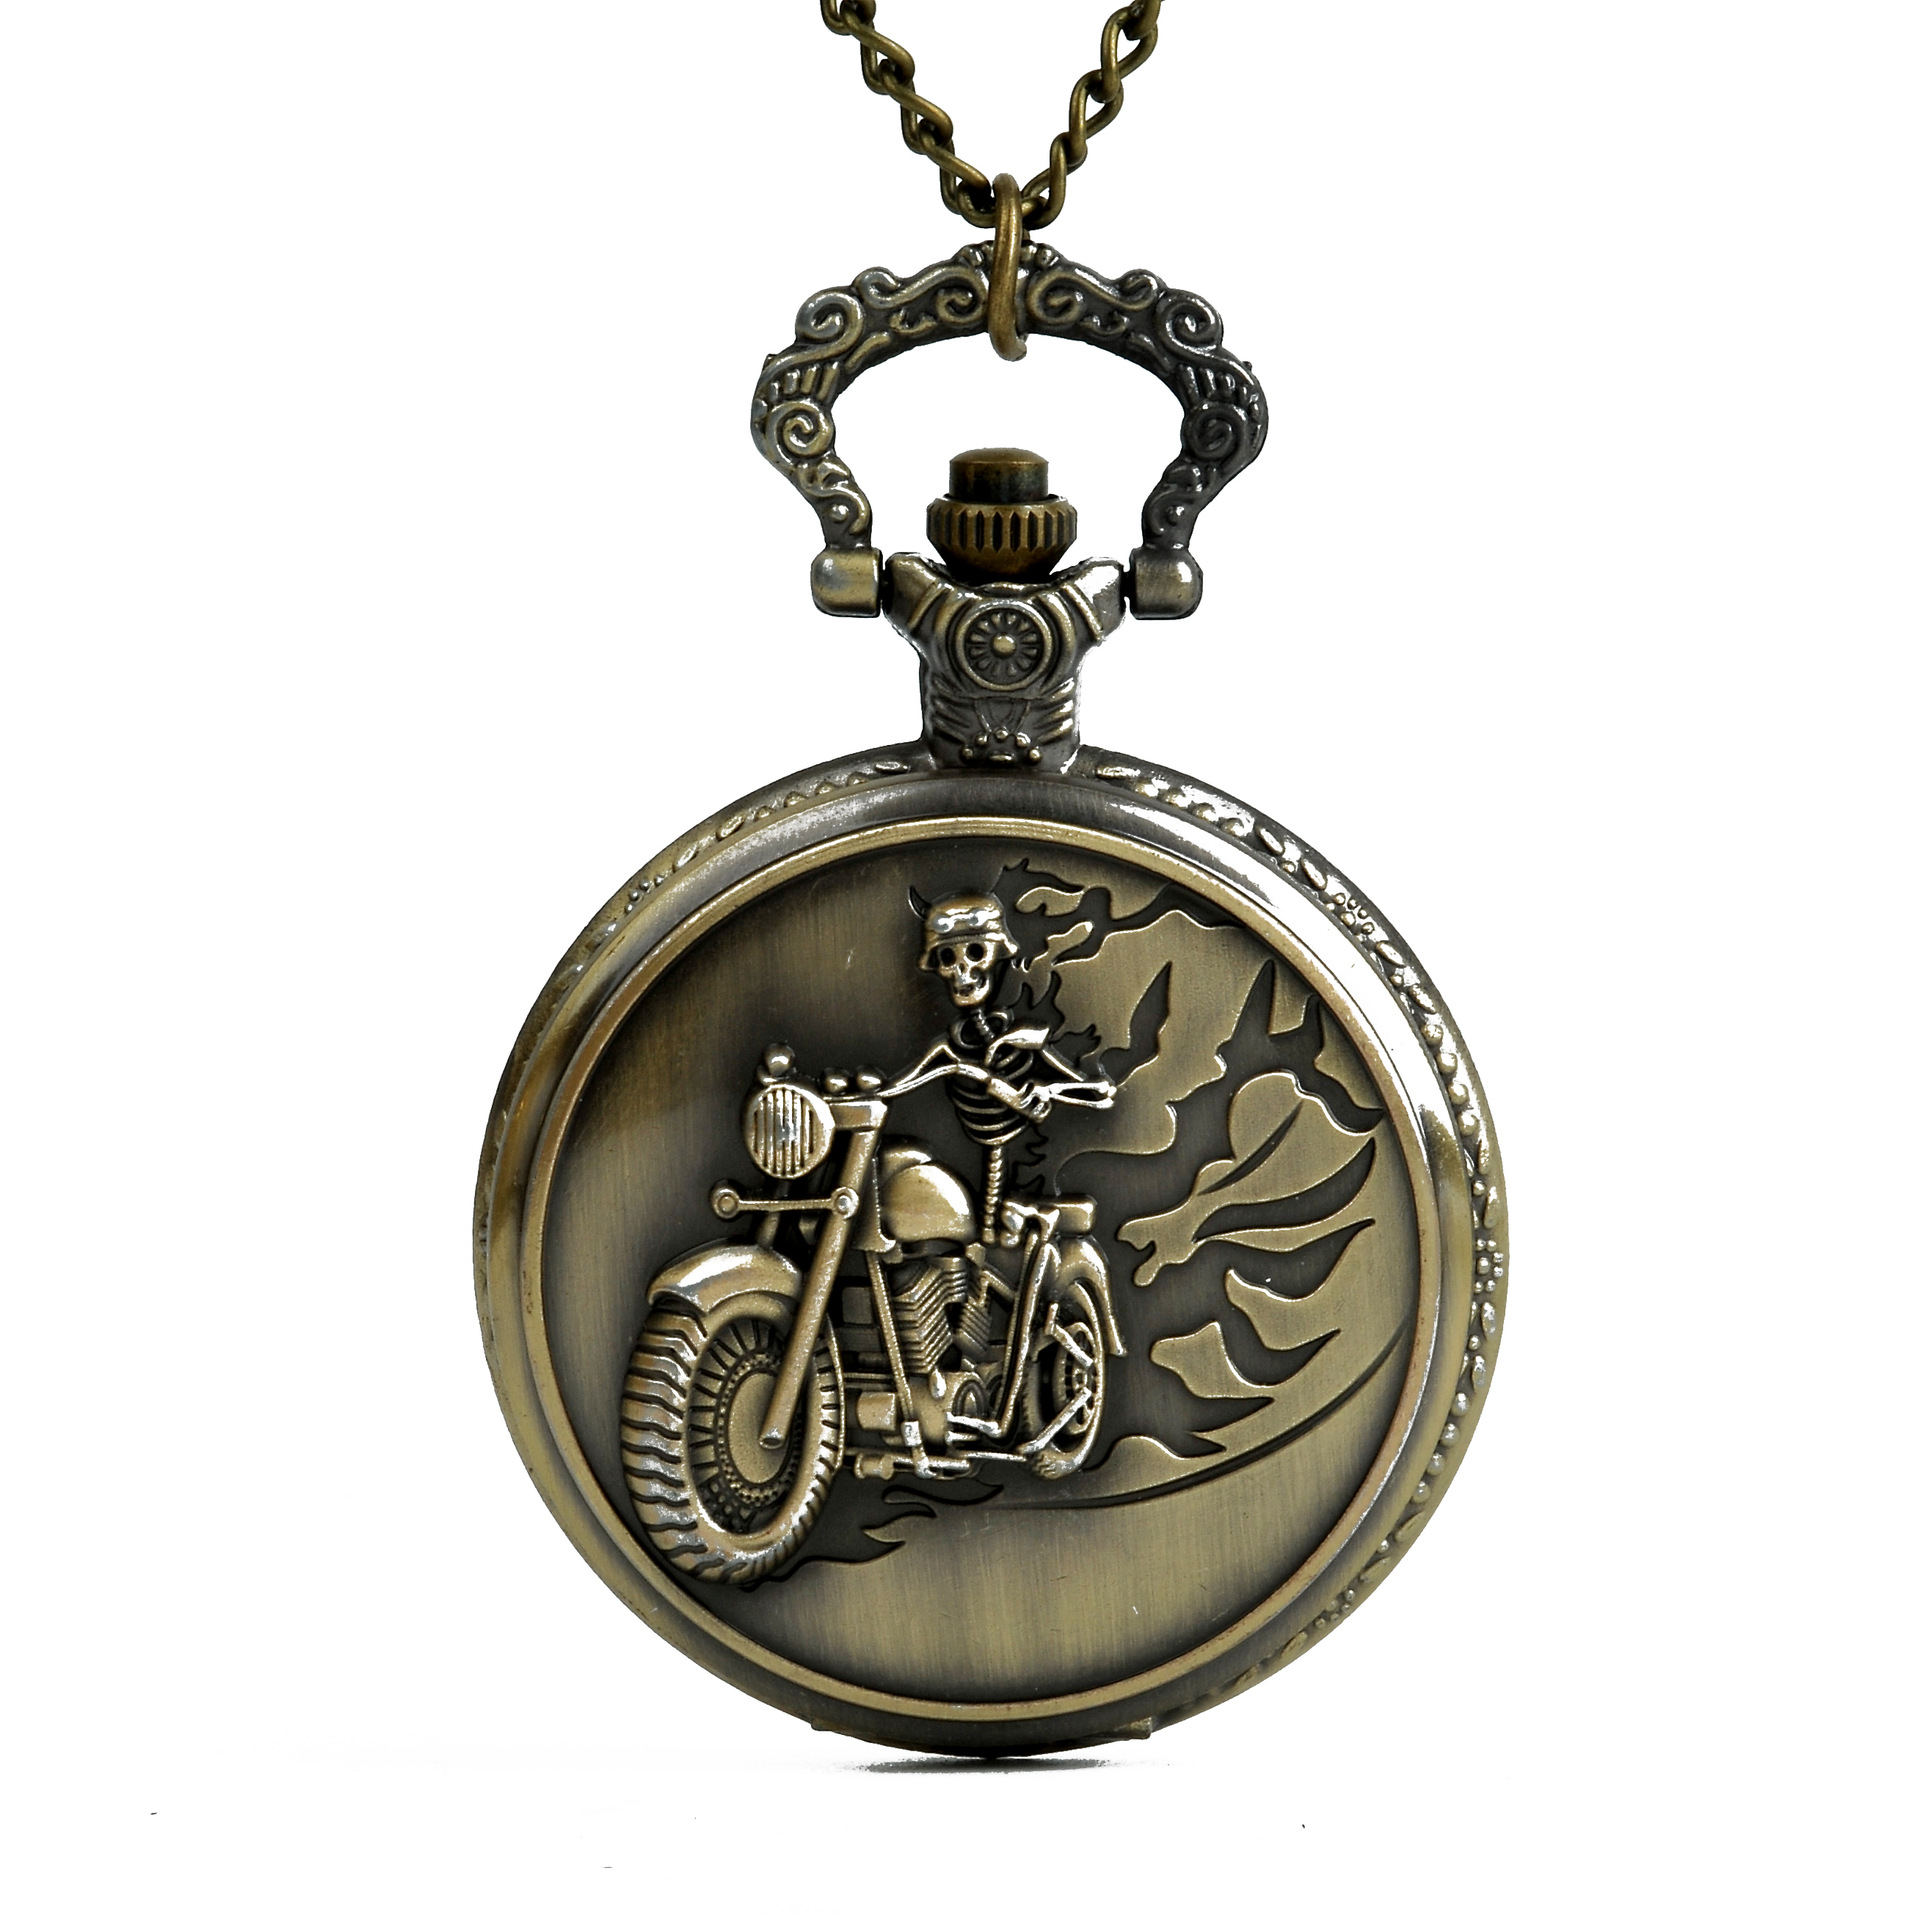 9009  Old Antique  Bronze Skull Design Riding Motorcycle Chain Pocket Watch For Grandpa  And Dad As The Greatest Gifts